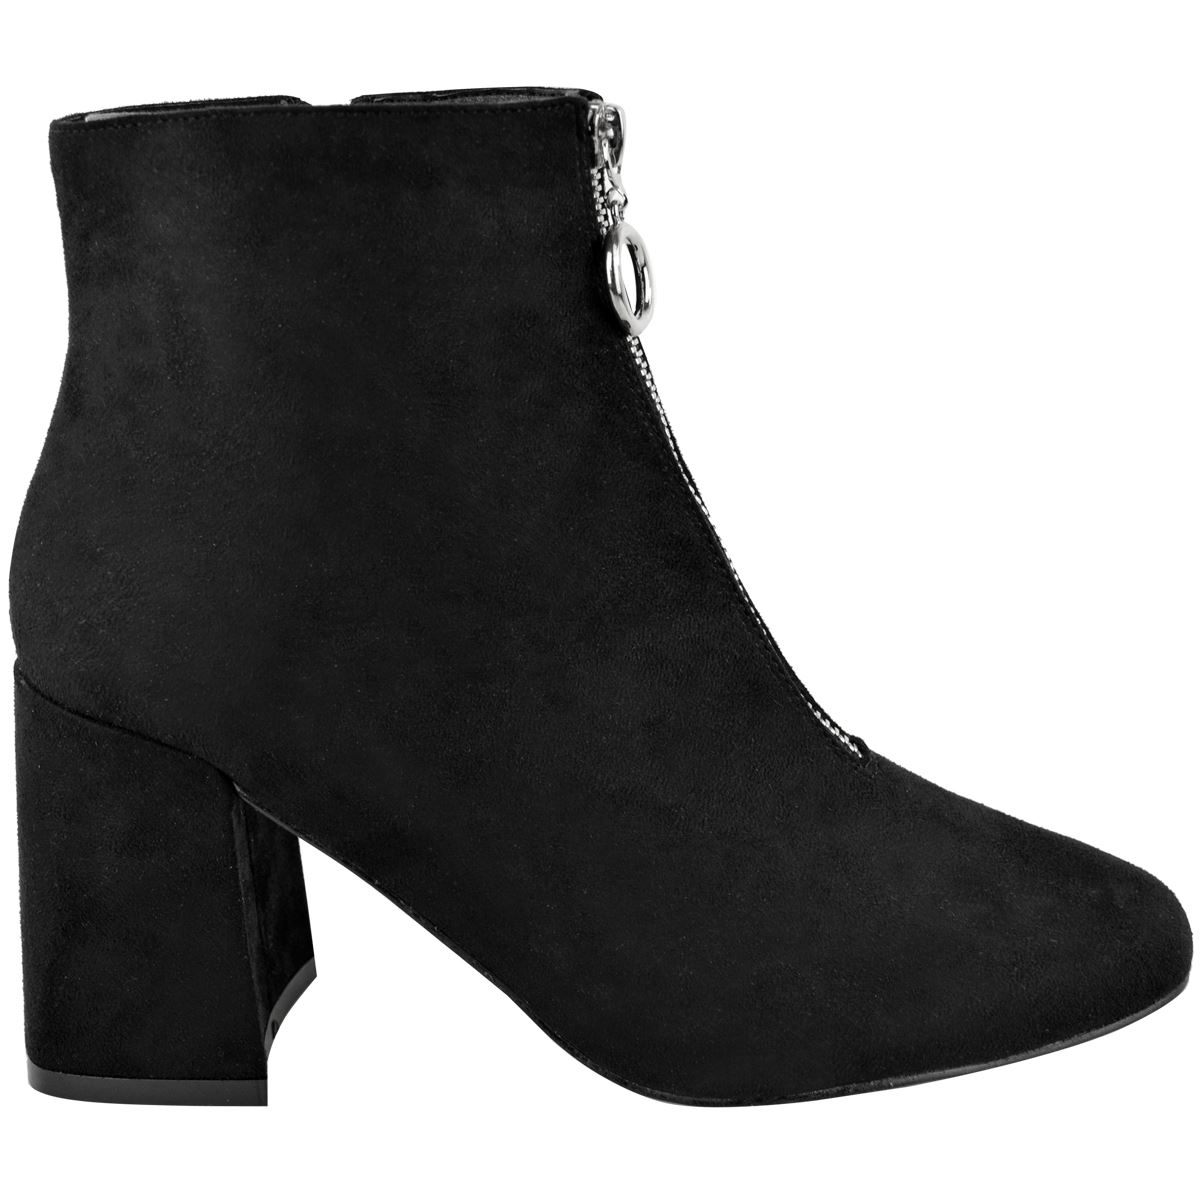 Womens Ladies Mid Low Block Heel Ankle Boots Work Office School Casual Shoes